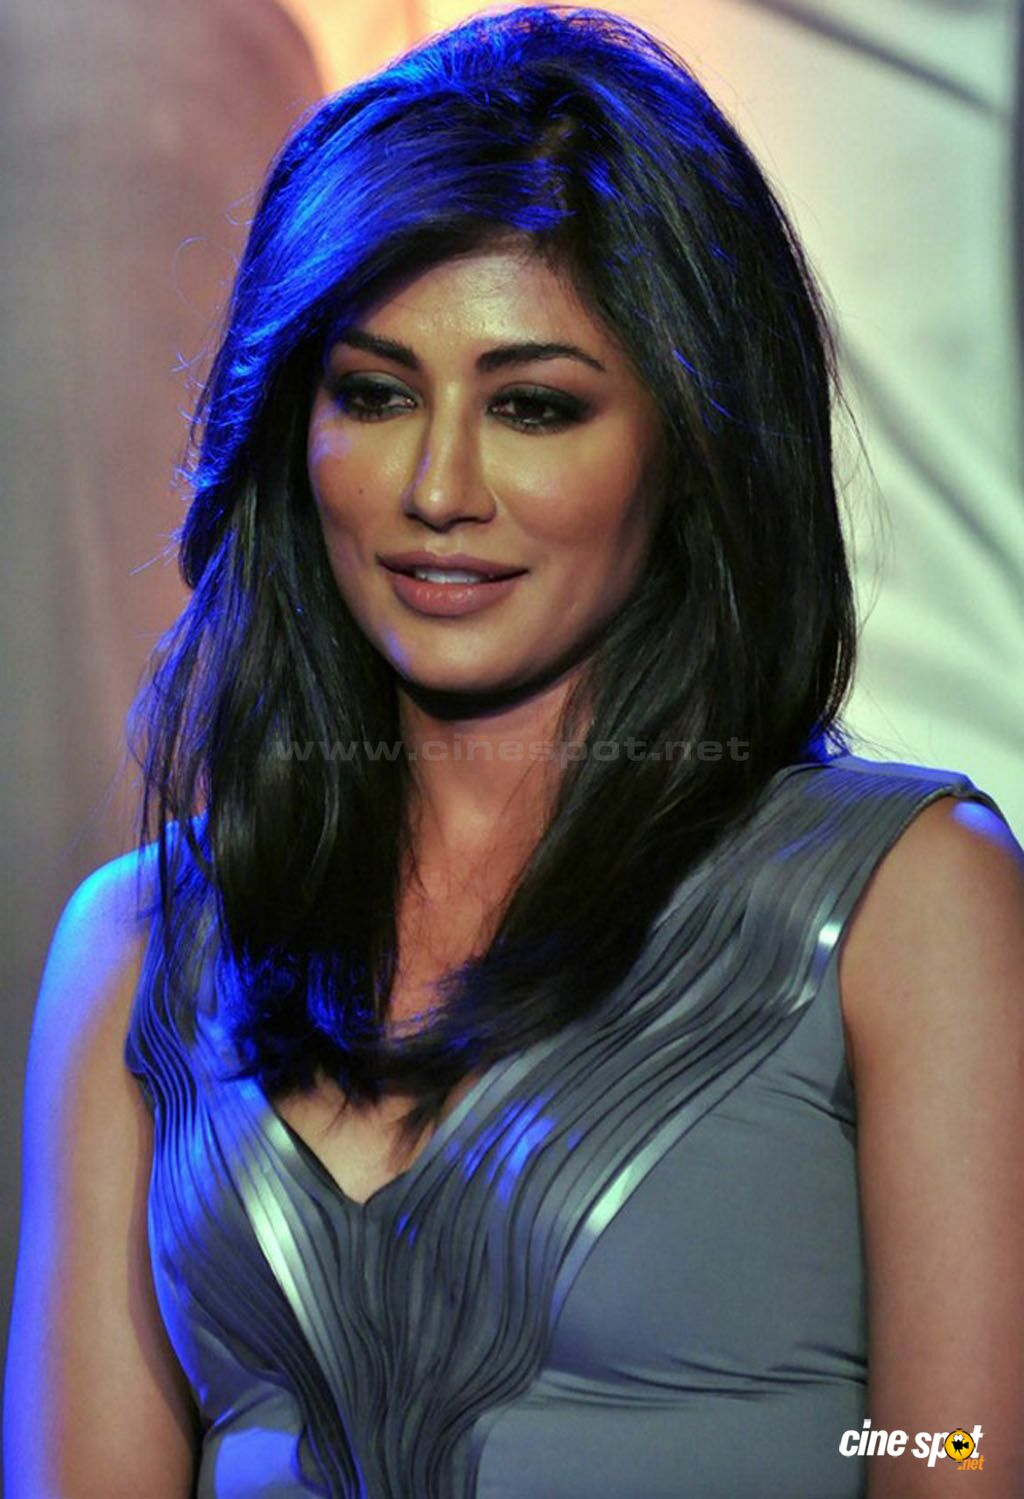 chitrangada singh movieschitrangada singh 2016, chitrangada singh interview, chitrangada singh instagram, chitrangada singh, chitrangada singh biography, chitrangada singh wiki, chitrangada singh facebook, chitrangada singh movies, chitrangada singh aao raja, chitrangada singh photos, chitrangada singh hot bikini, chitrangada singh son, chitrangada singh hot pics, chitrangada singh age, chitrangada singh hot scene, chitrangada singh bikini, chitrangada singh divorce, chitrangada singh height